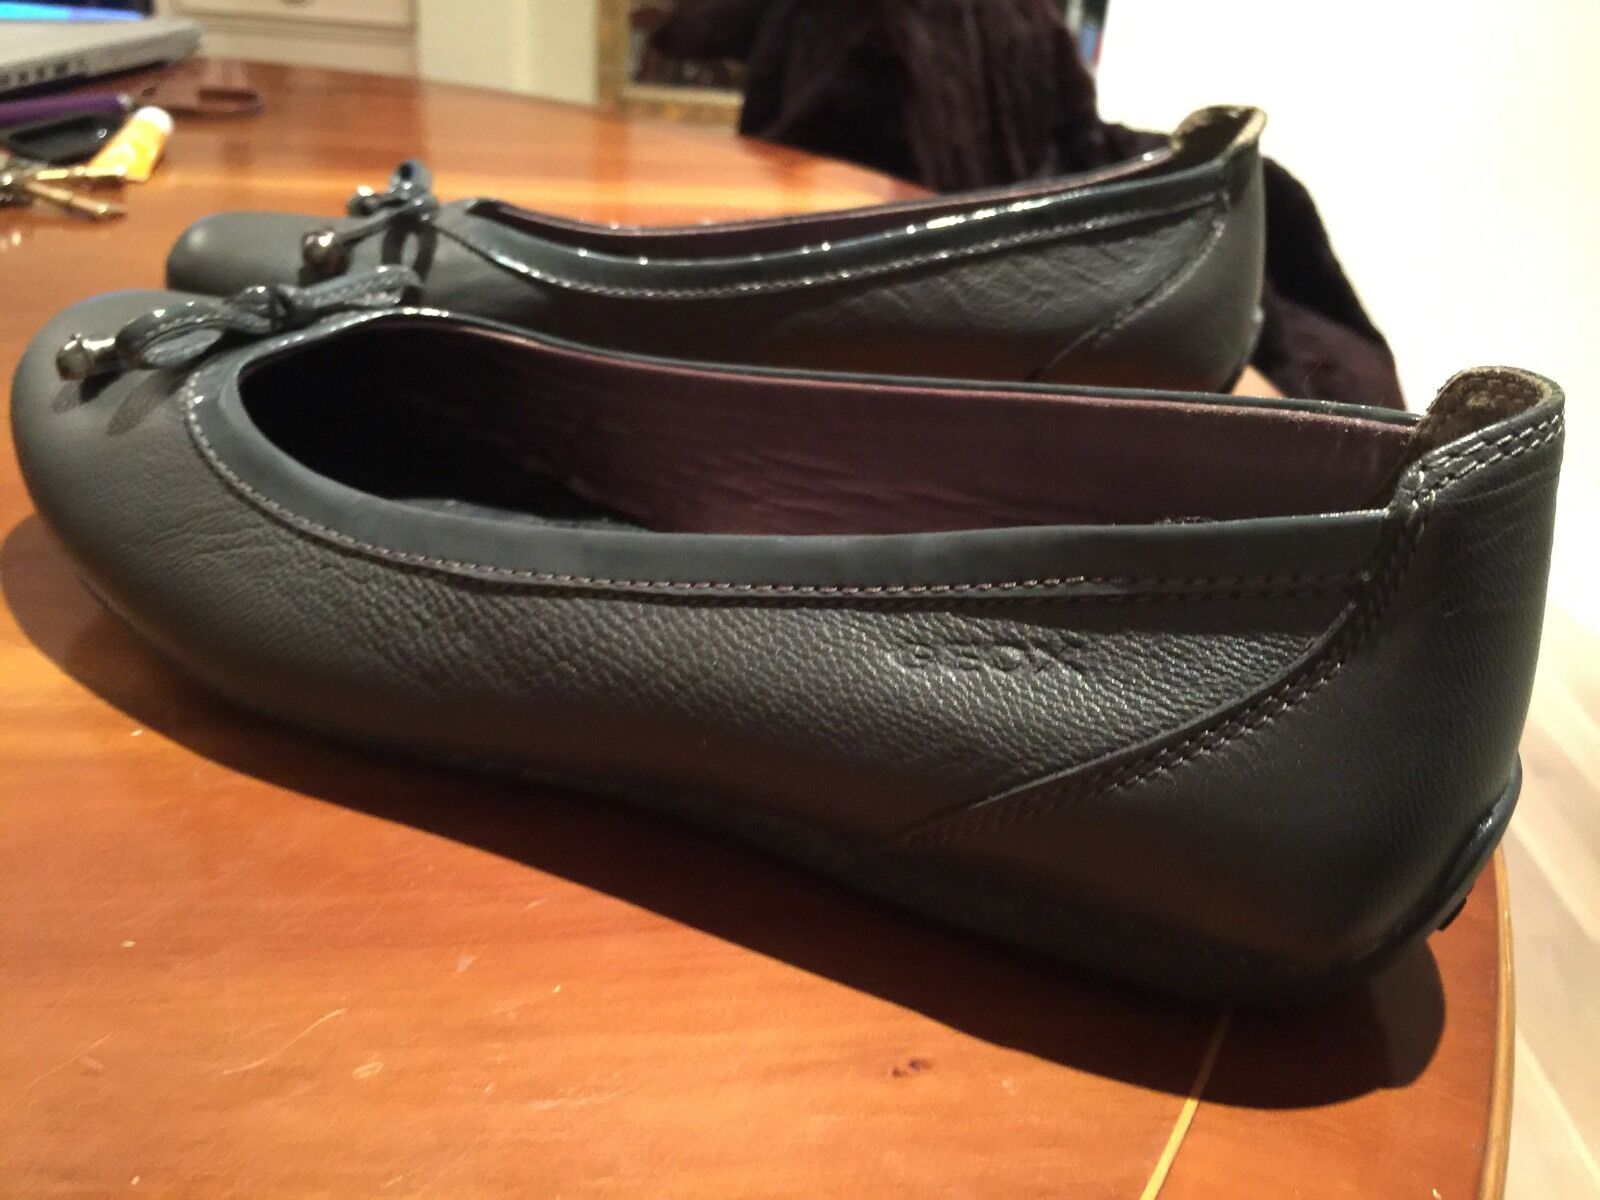 Geox Respira Ladies Leather Ballet Ballet Ballet Flats Size 42 New 2cc478